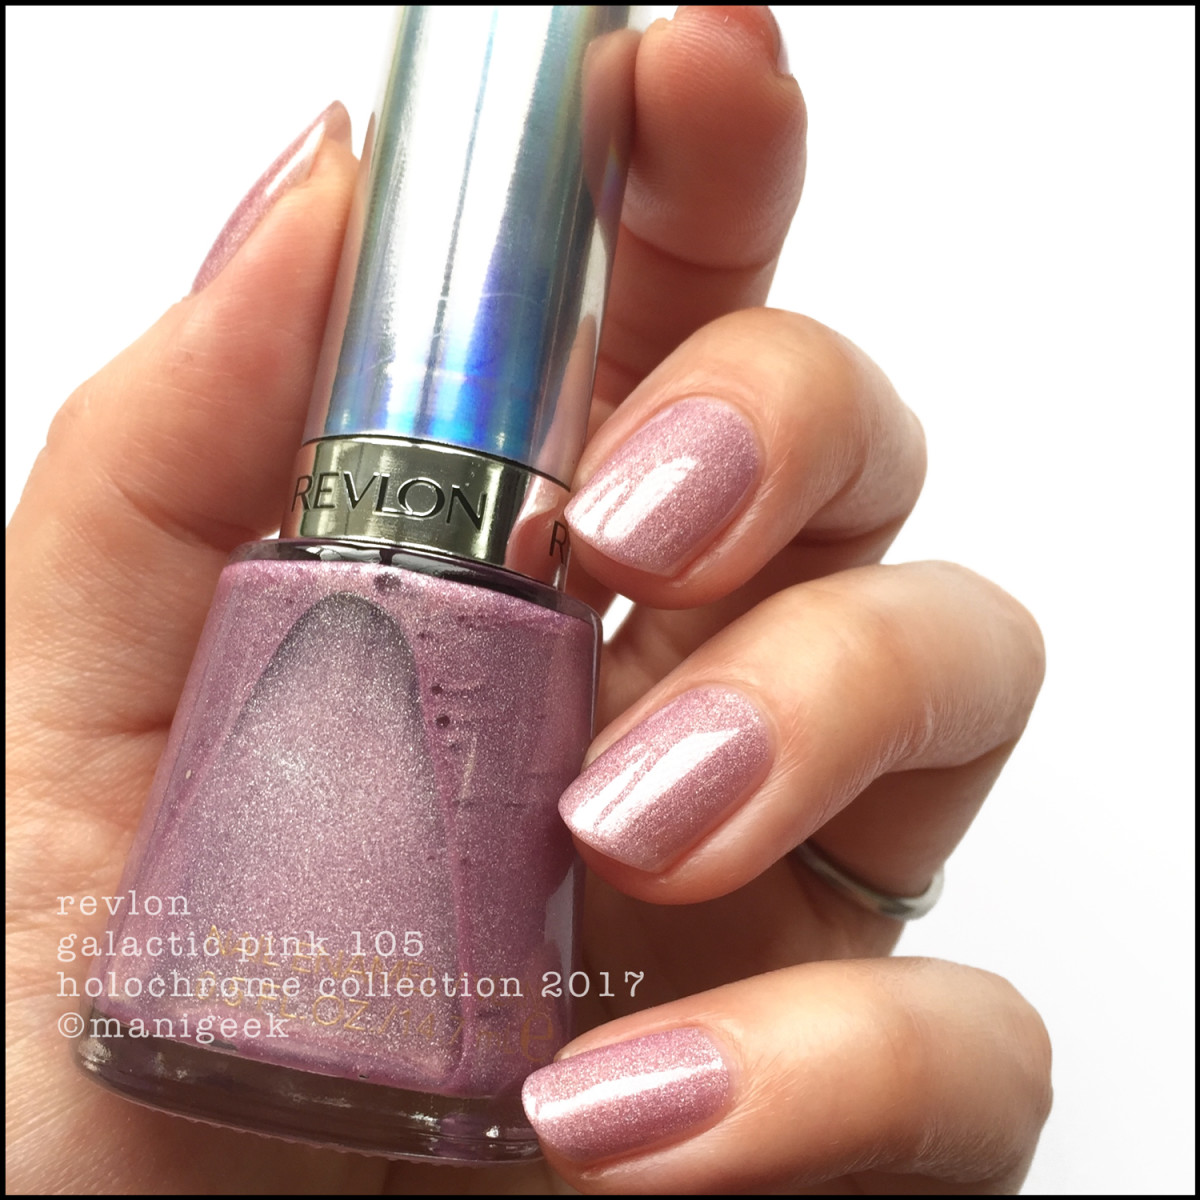 Revlon Galactic Pink 105 Holochrome Collection Swatches